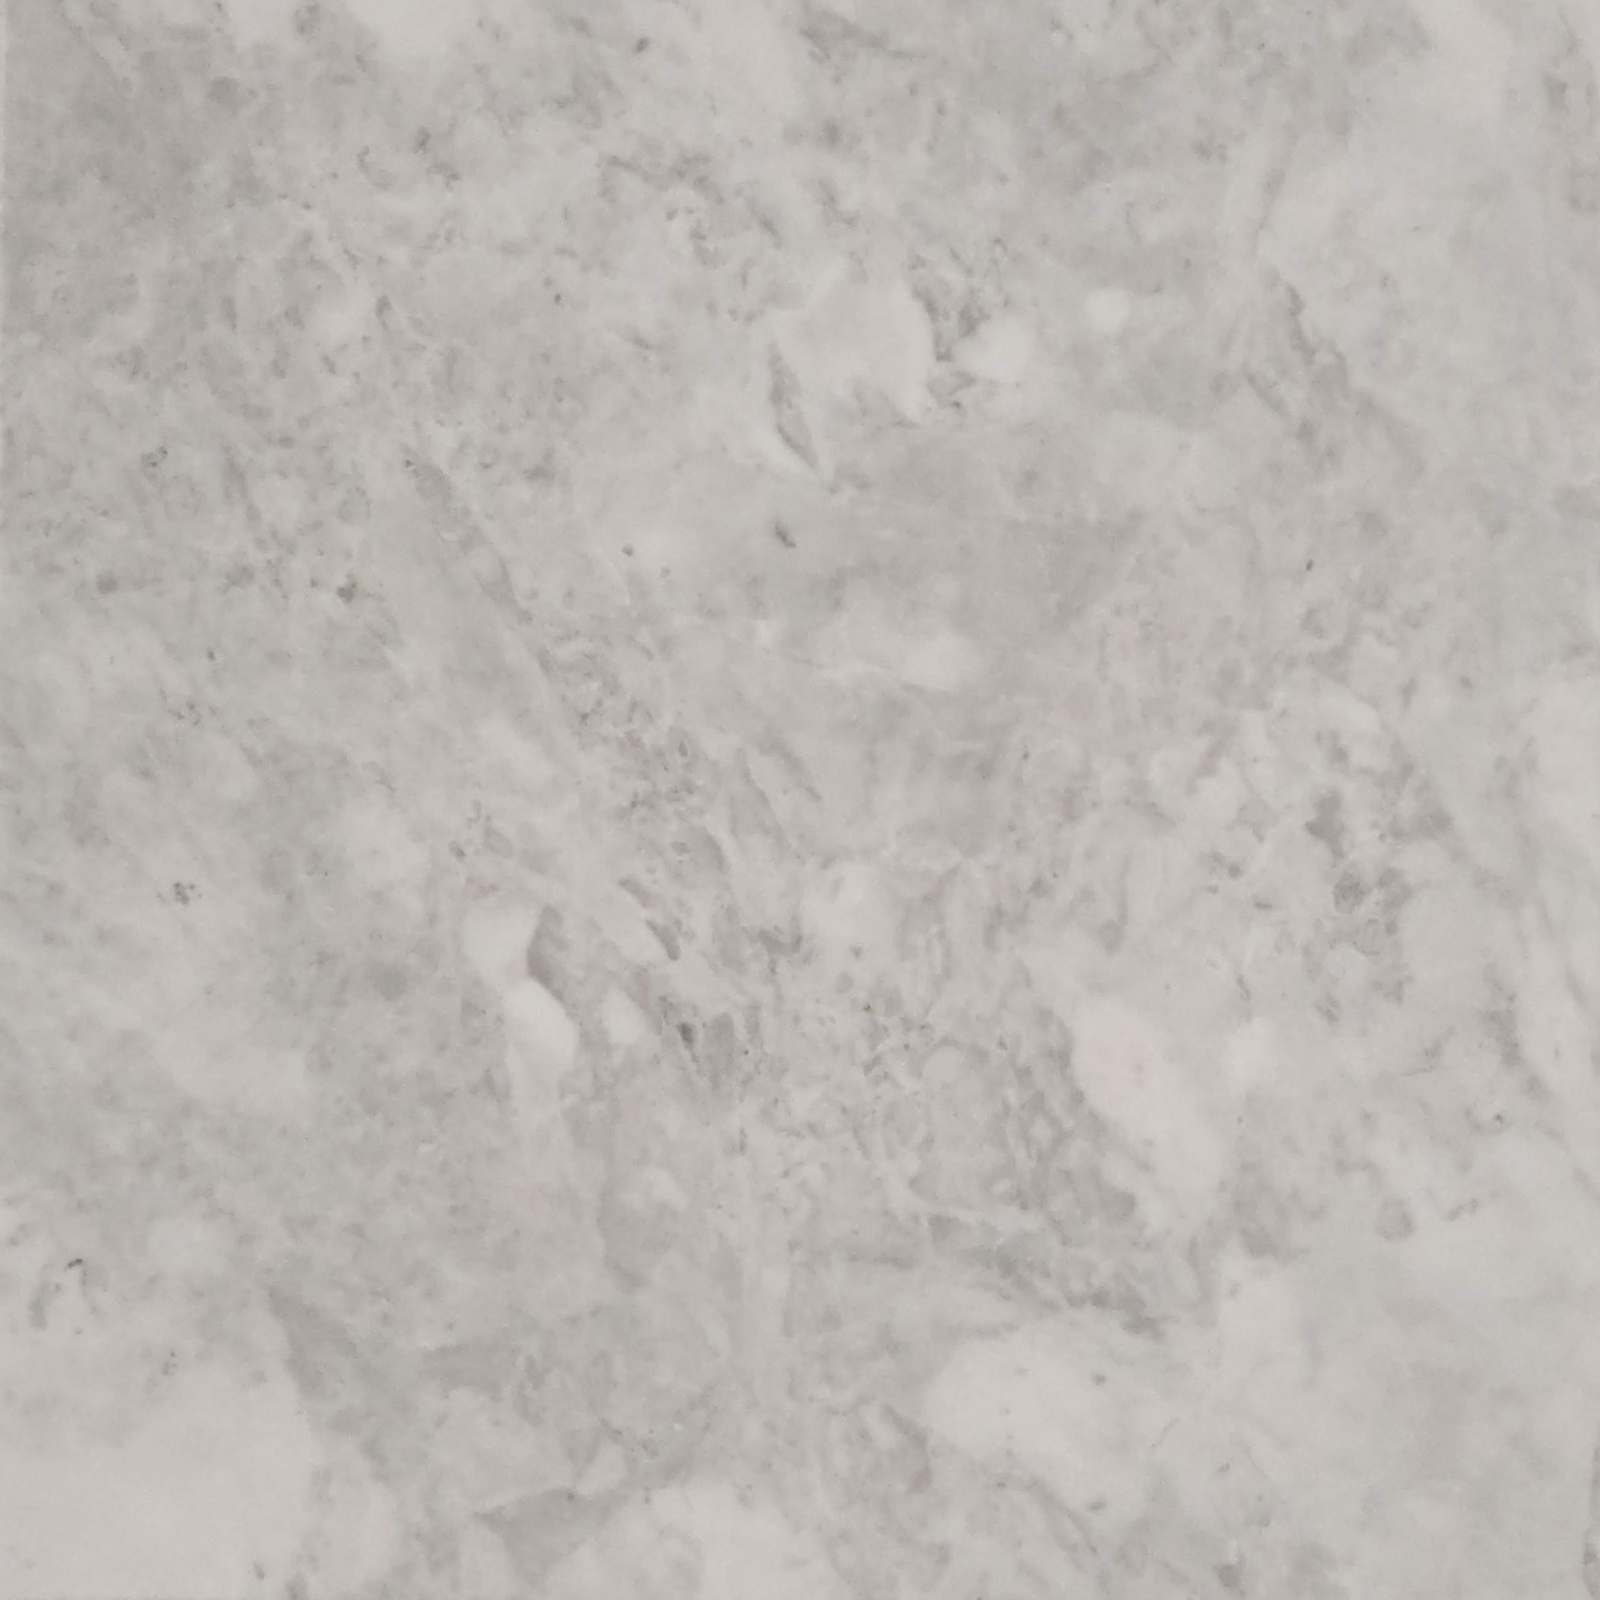 Dolosil Marble